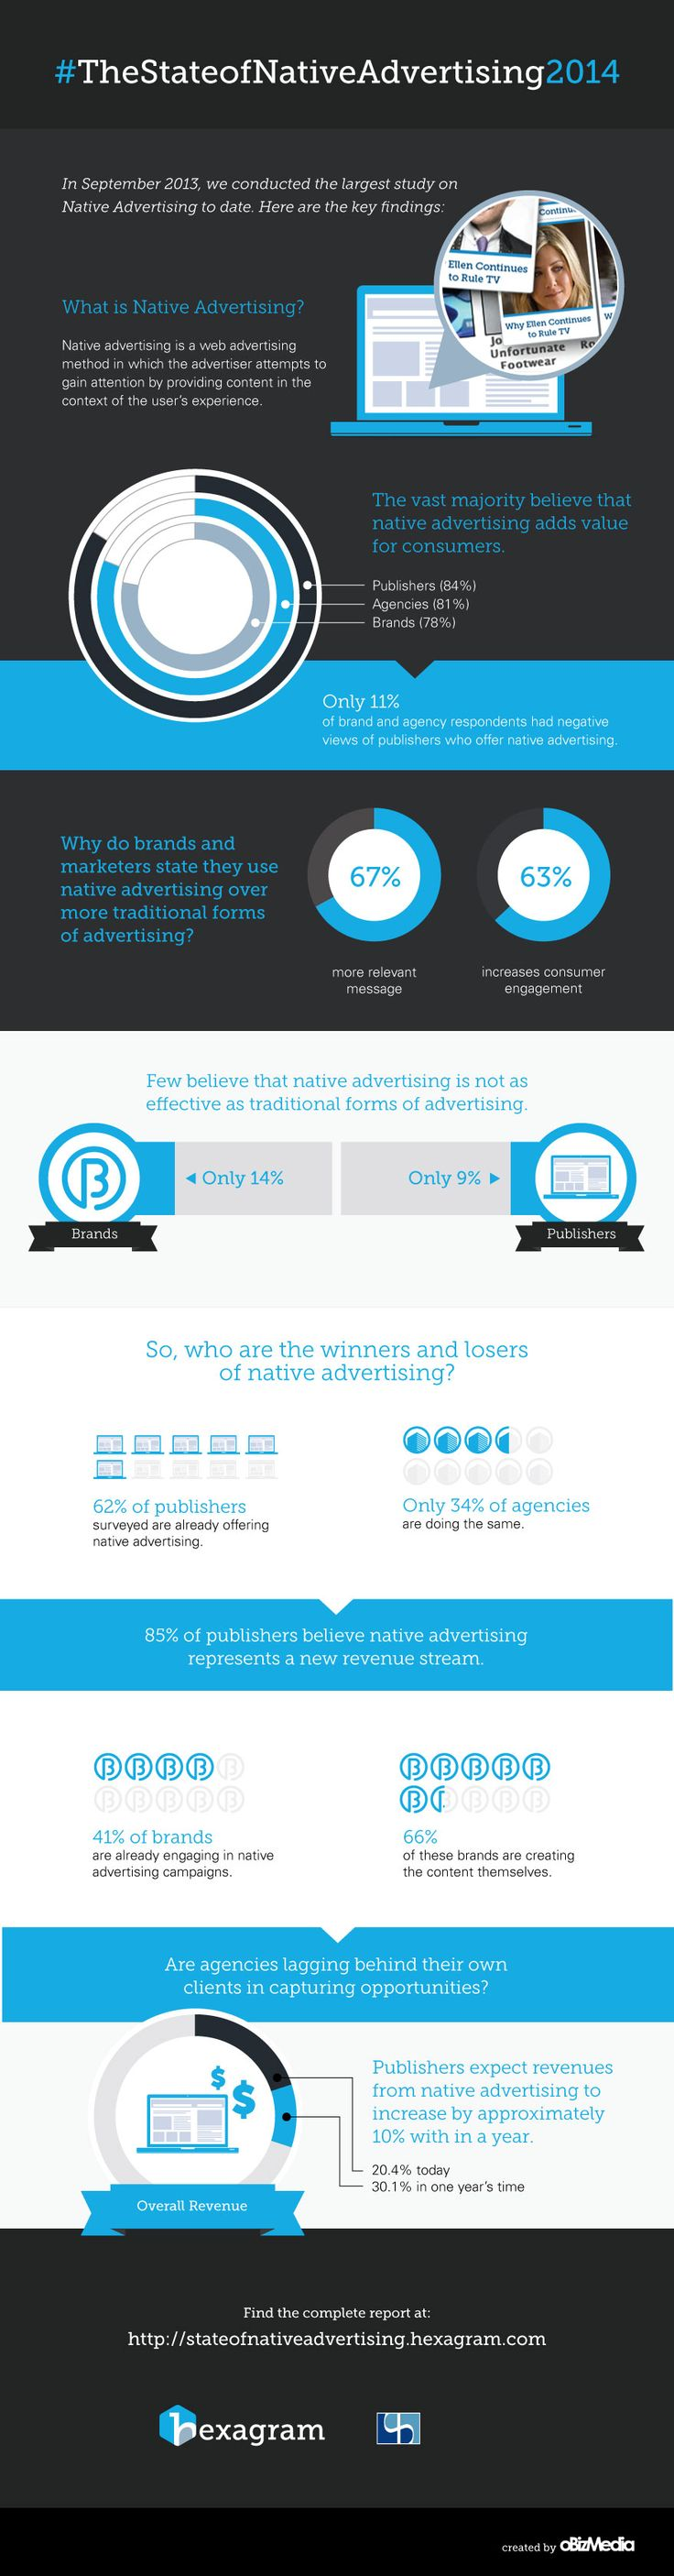 The State of Native Advertising 2014 [INFOGRAPHIC]  http://socialmediatoday.com/ritu-pant/1920061/state-native-advertising-2014